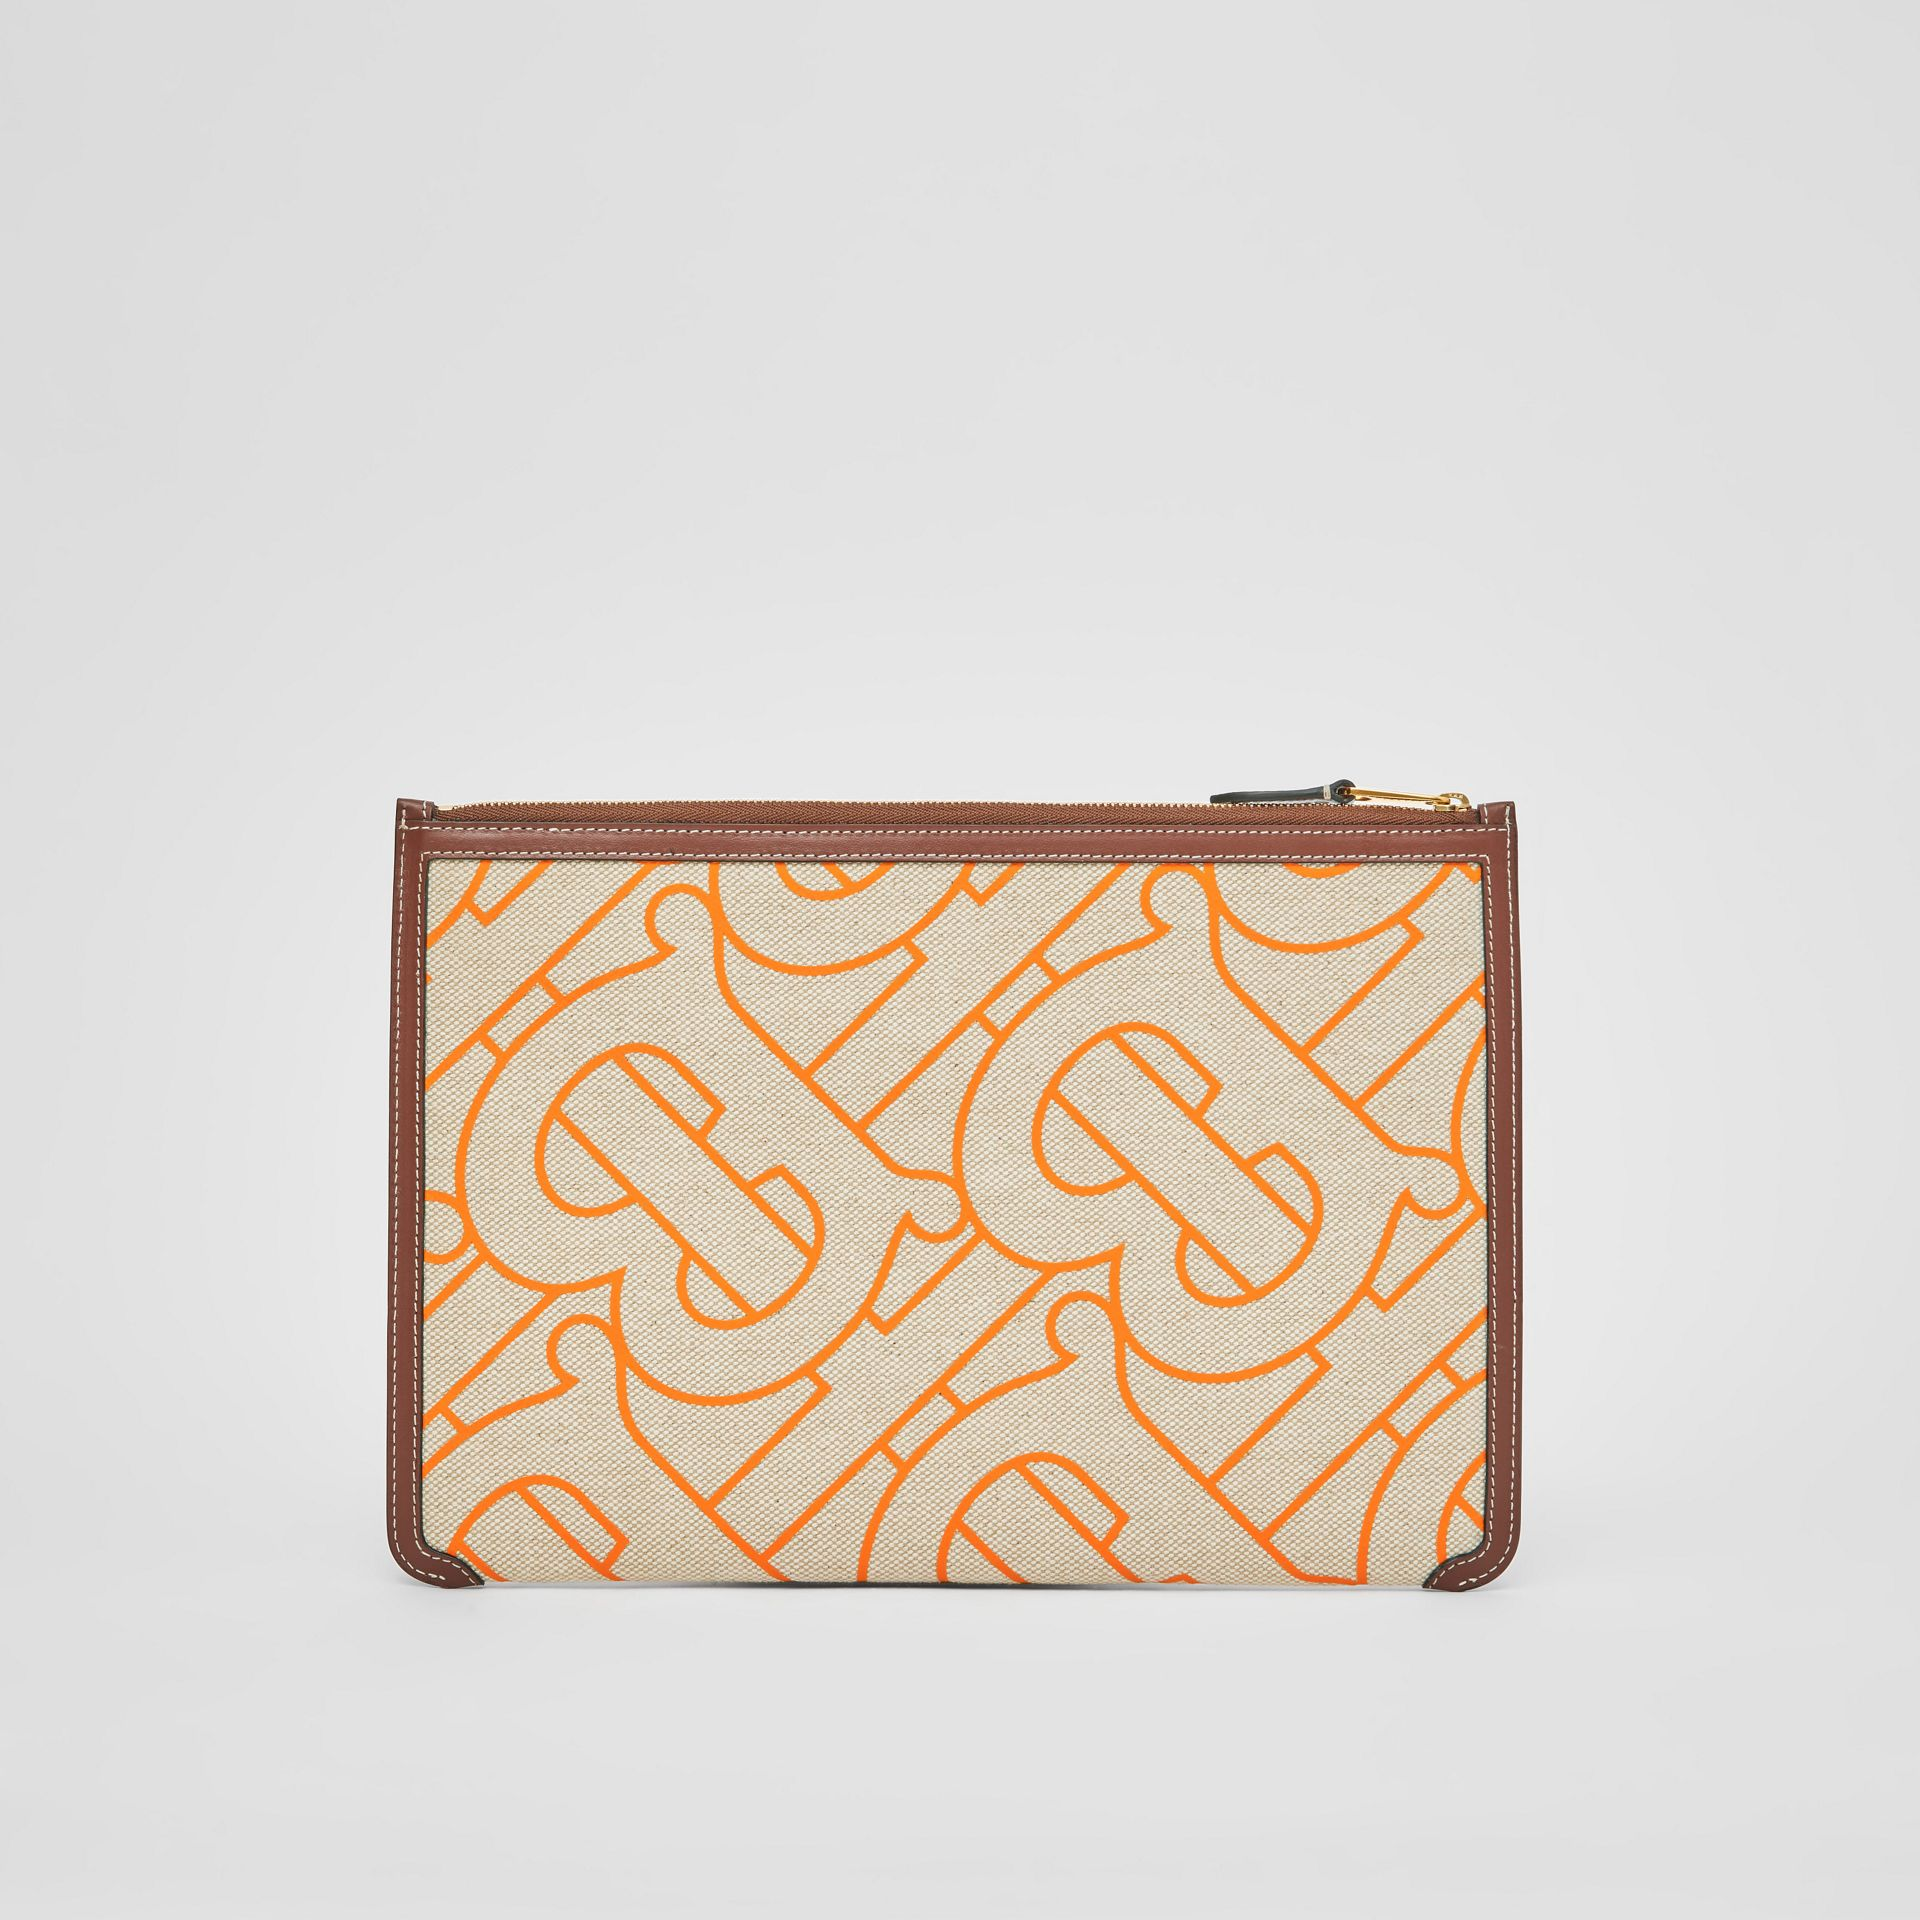 Monogram Motif Canvas and Leather Pouch in Natural/orange - Women | Burberry United States - gallery image 6